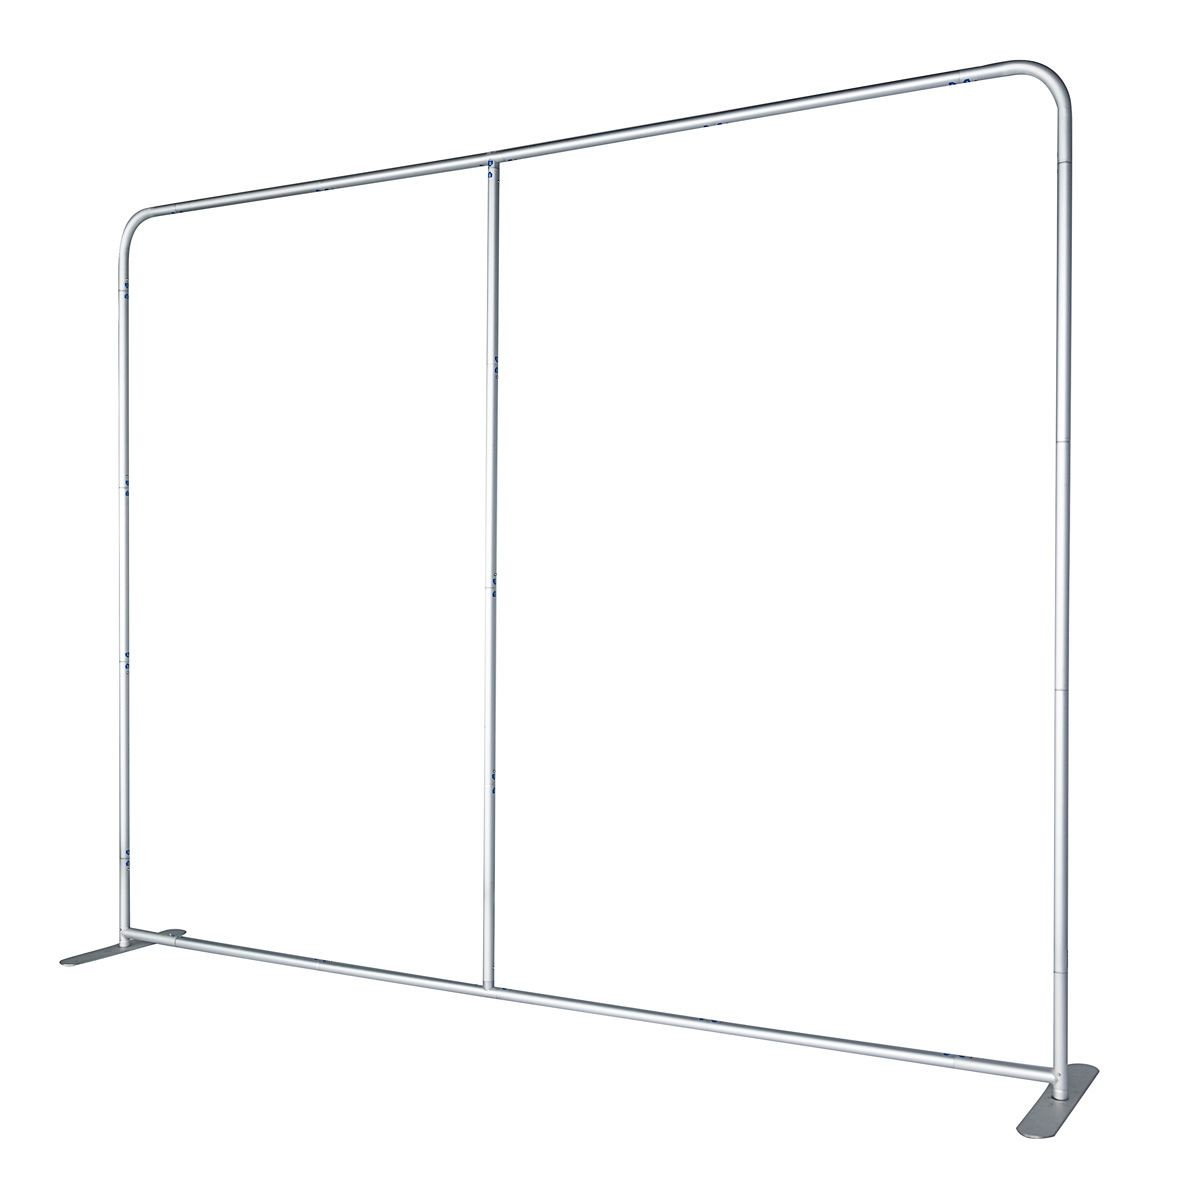 Hardware Frame for 10 Foot Tension Fabric Displays